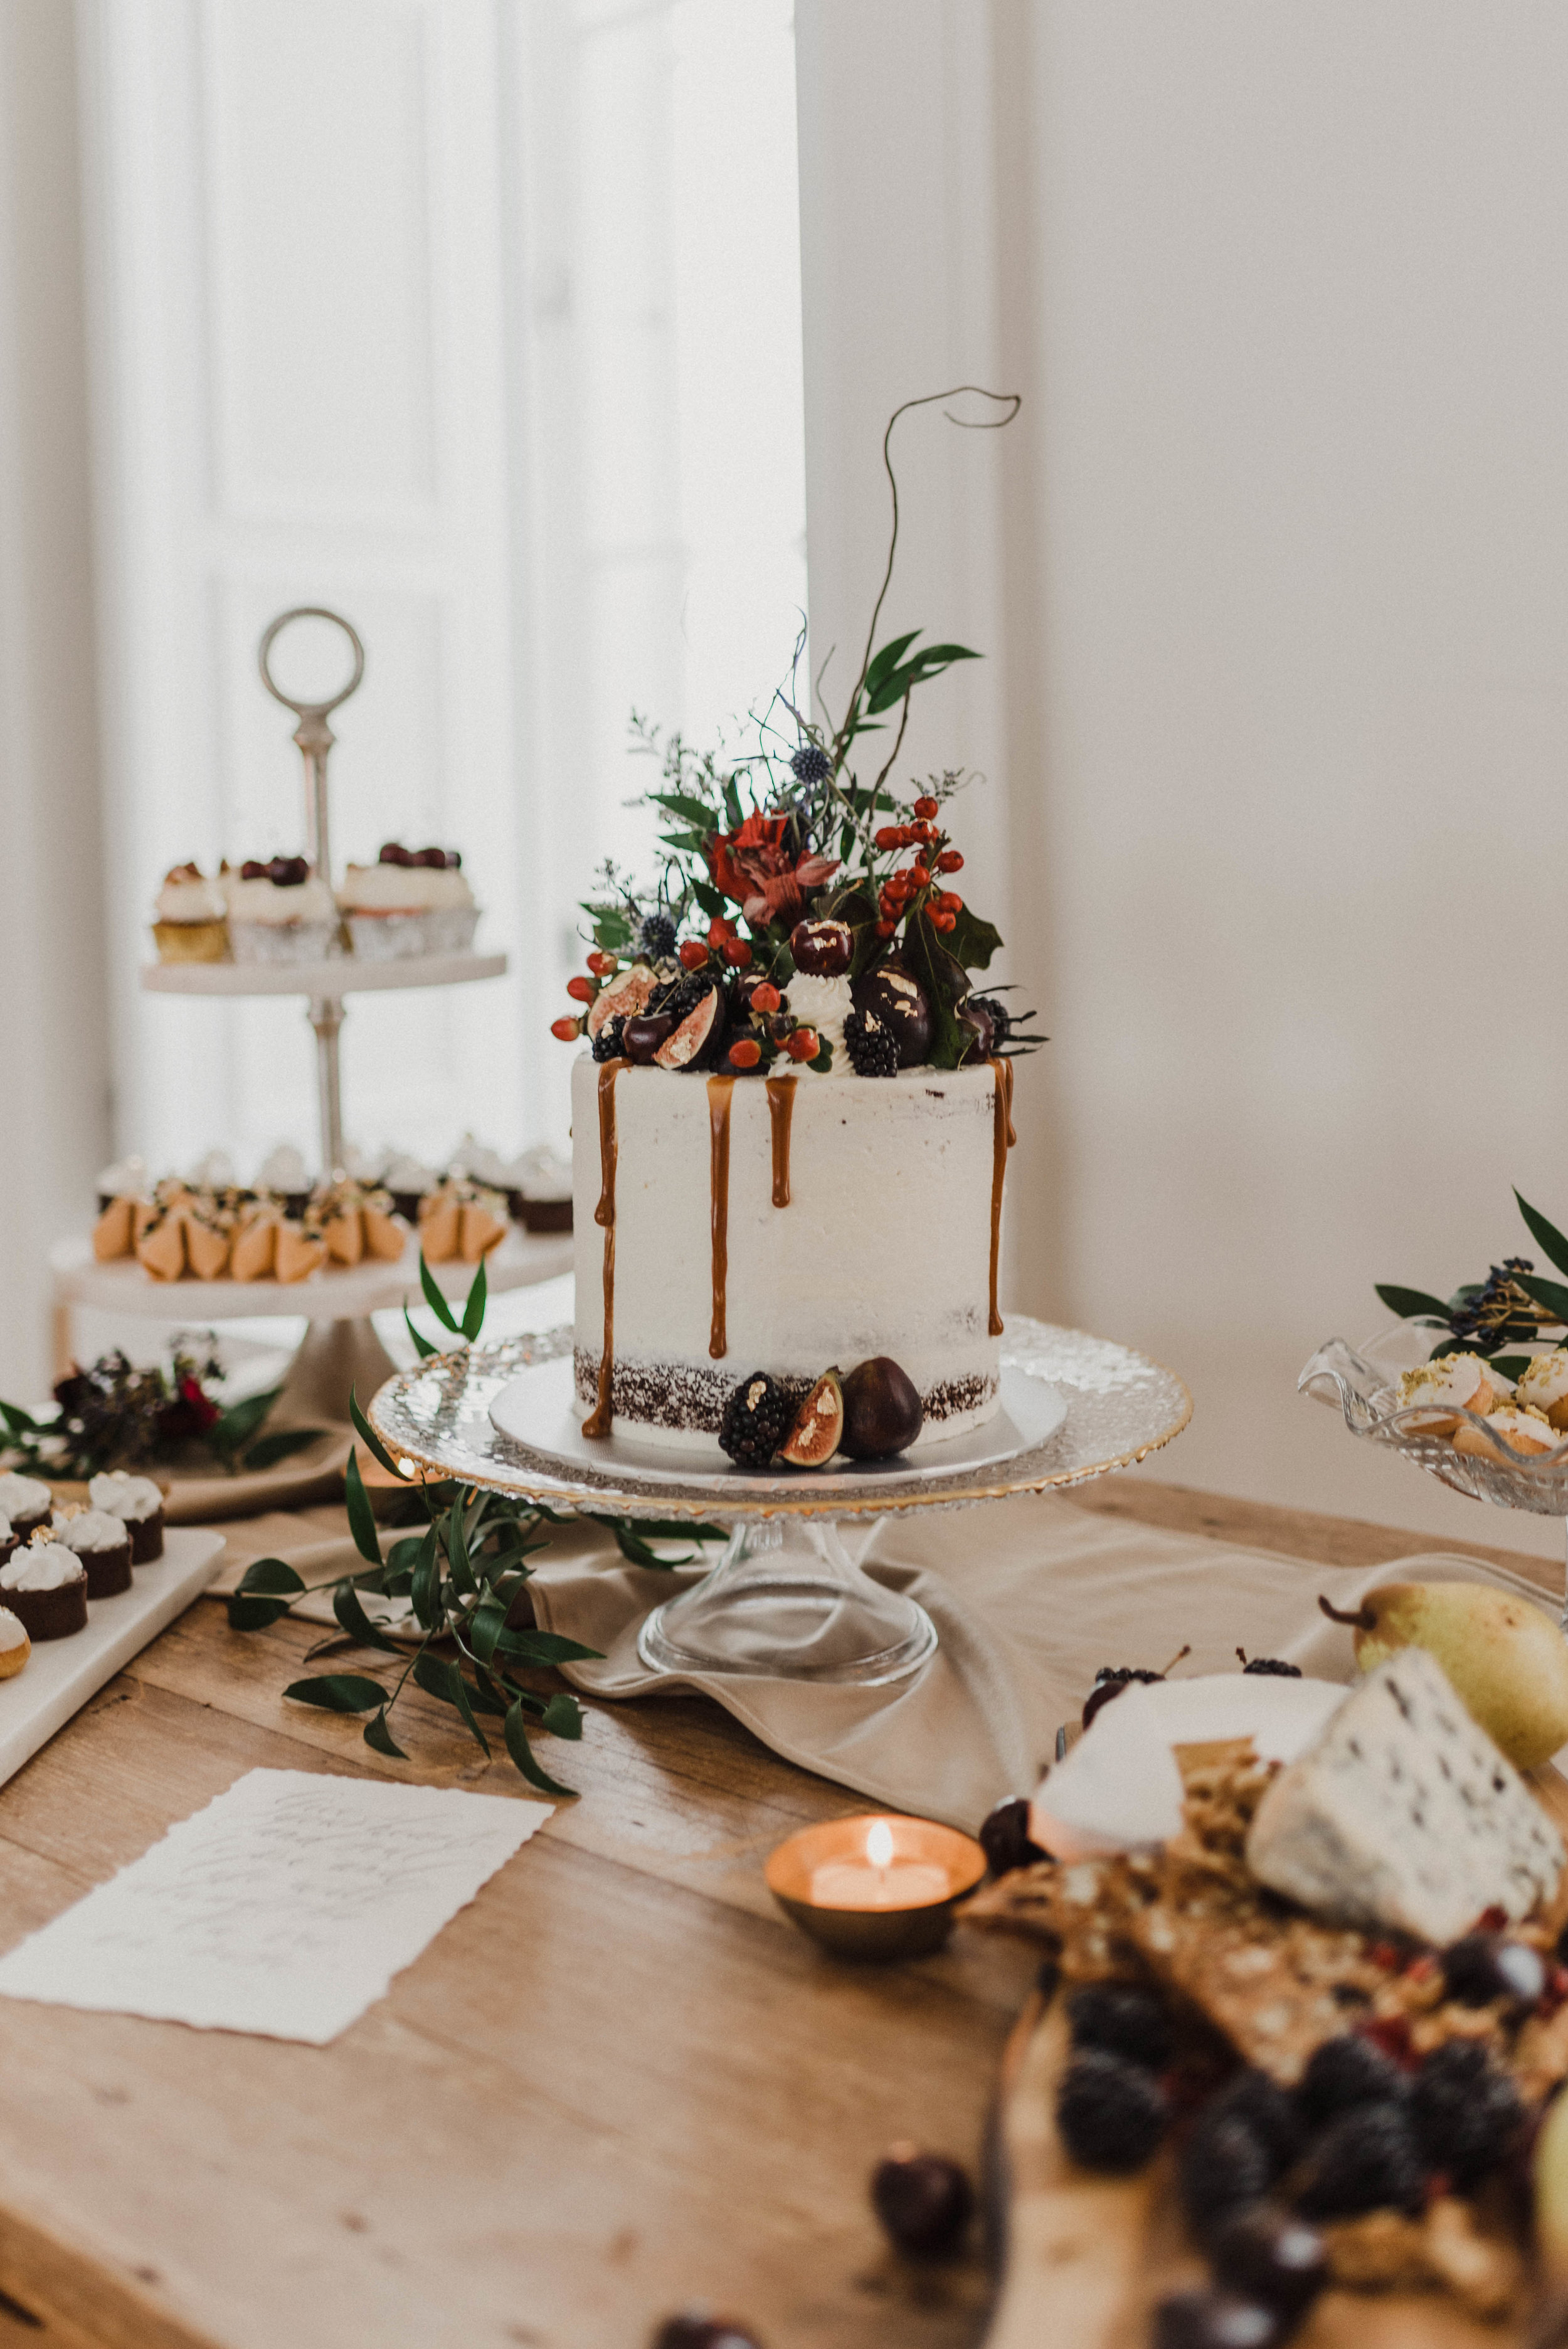 Delicious wedding cake and assorted desserts